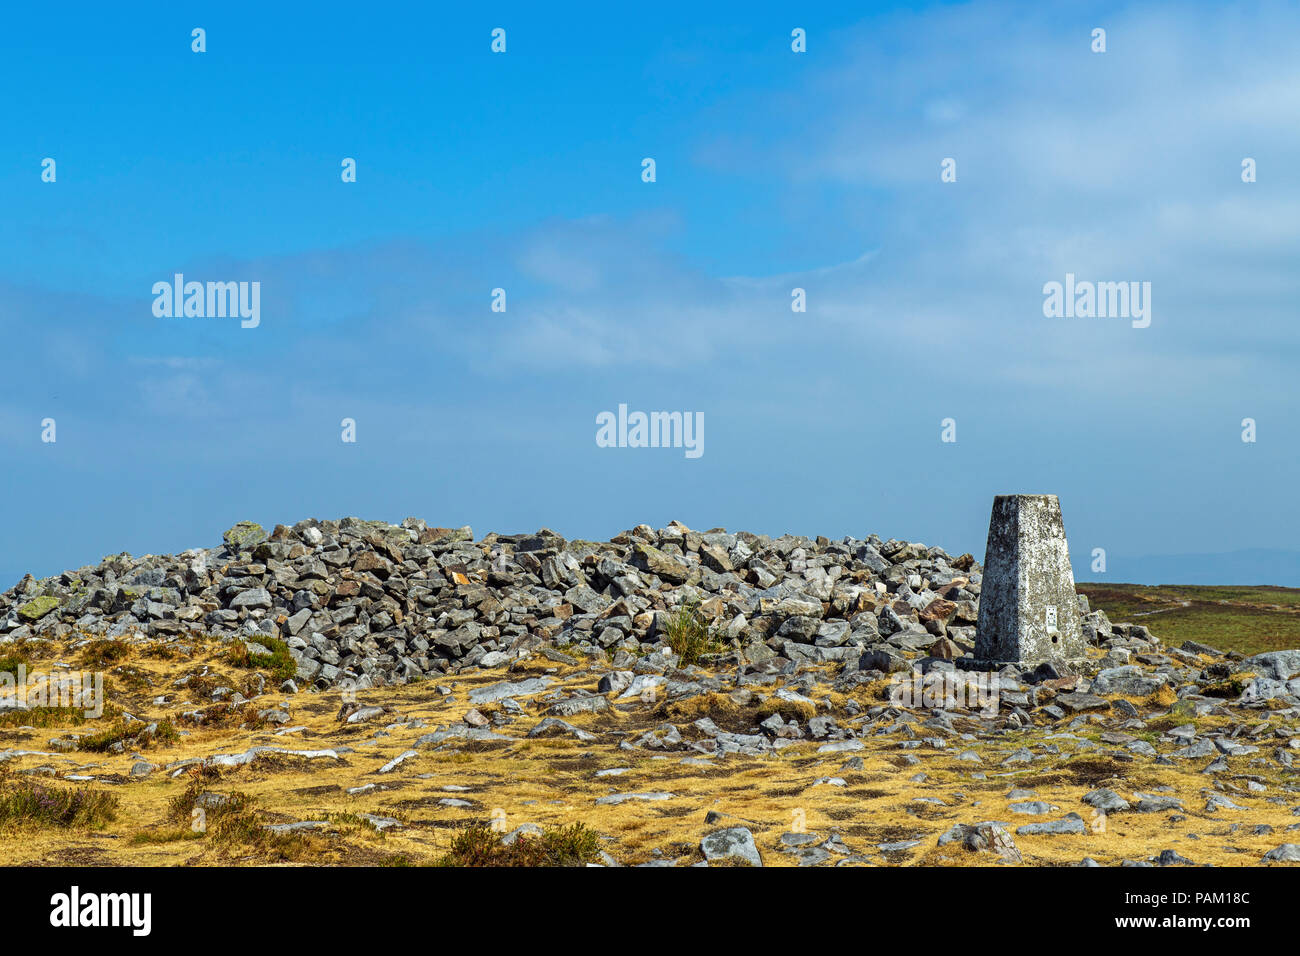 The Trig Point and Cairn on the summit of The Blorenge - Stock Image